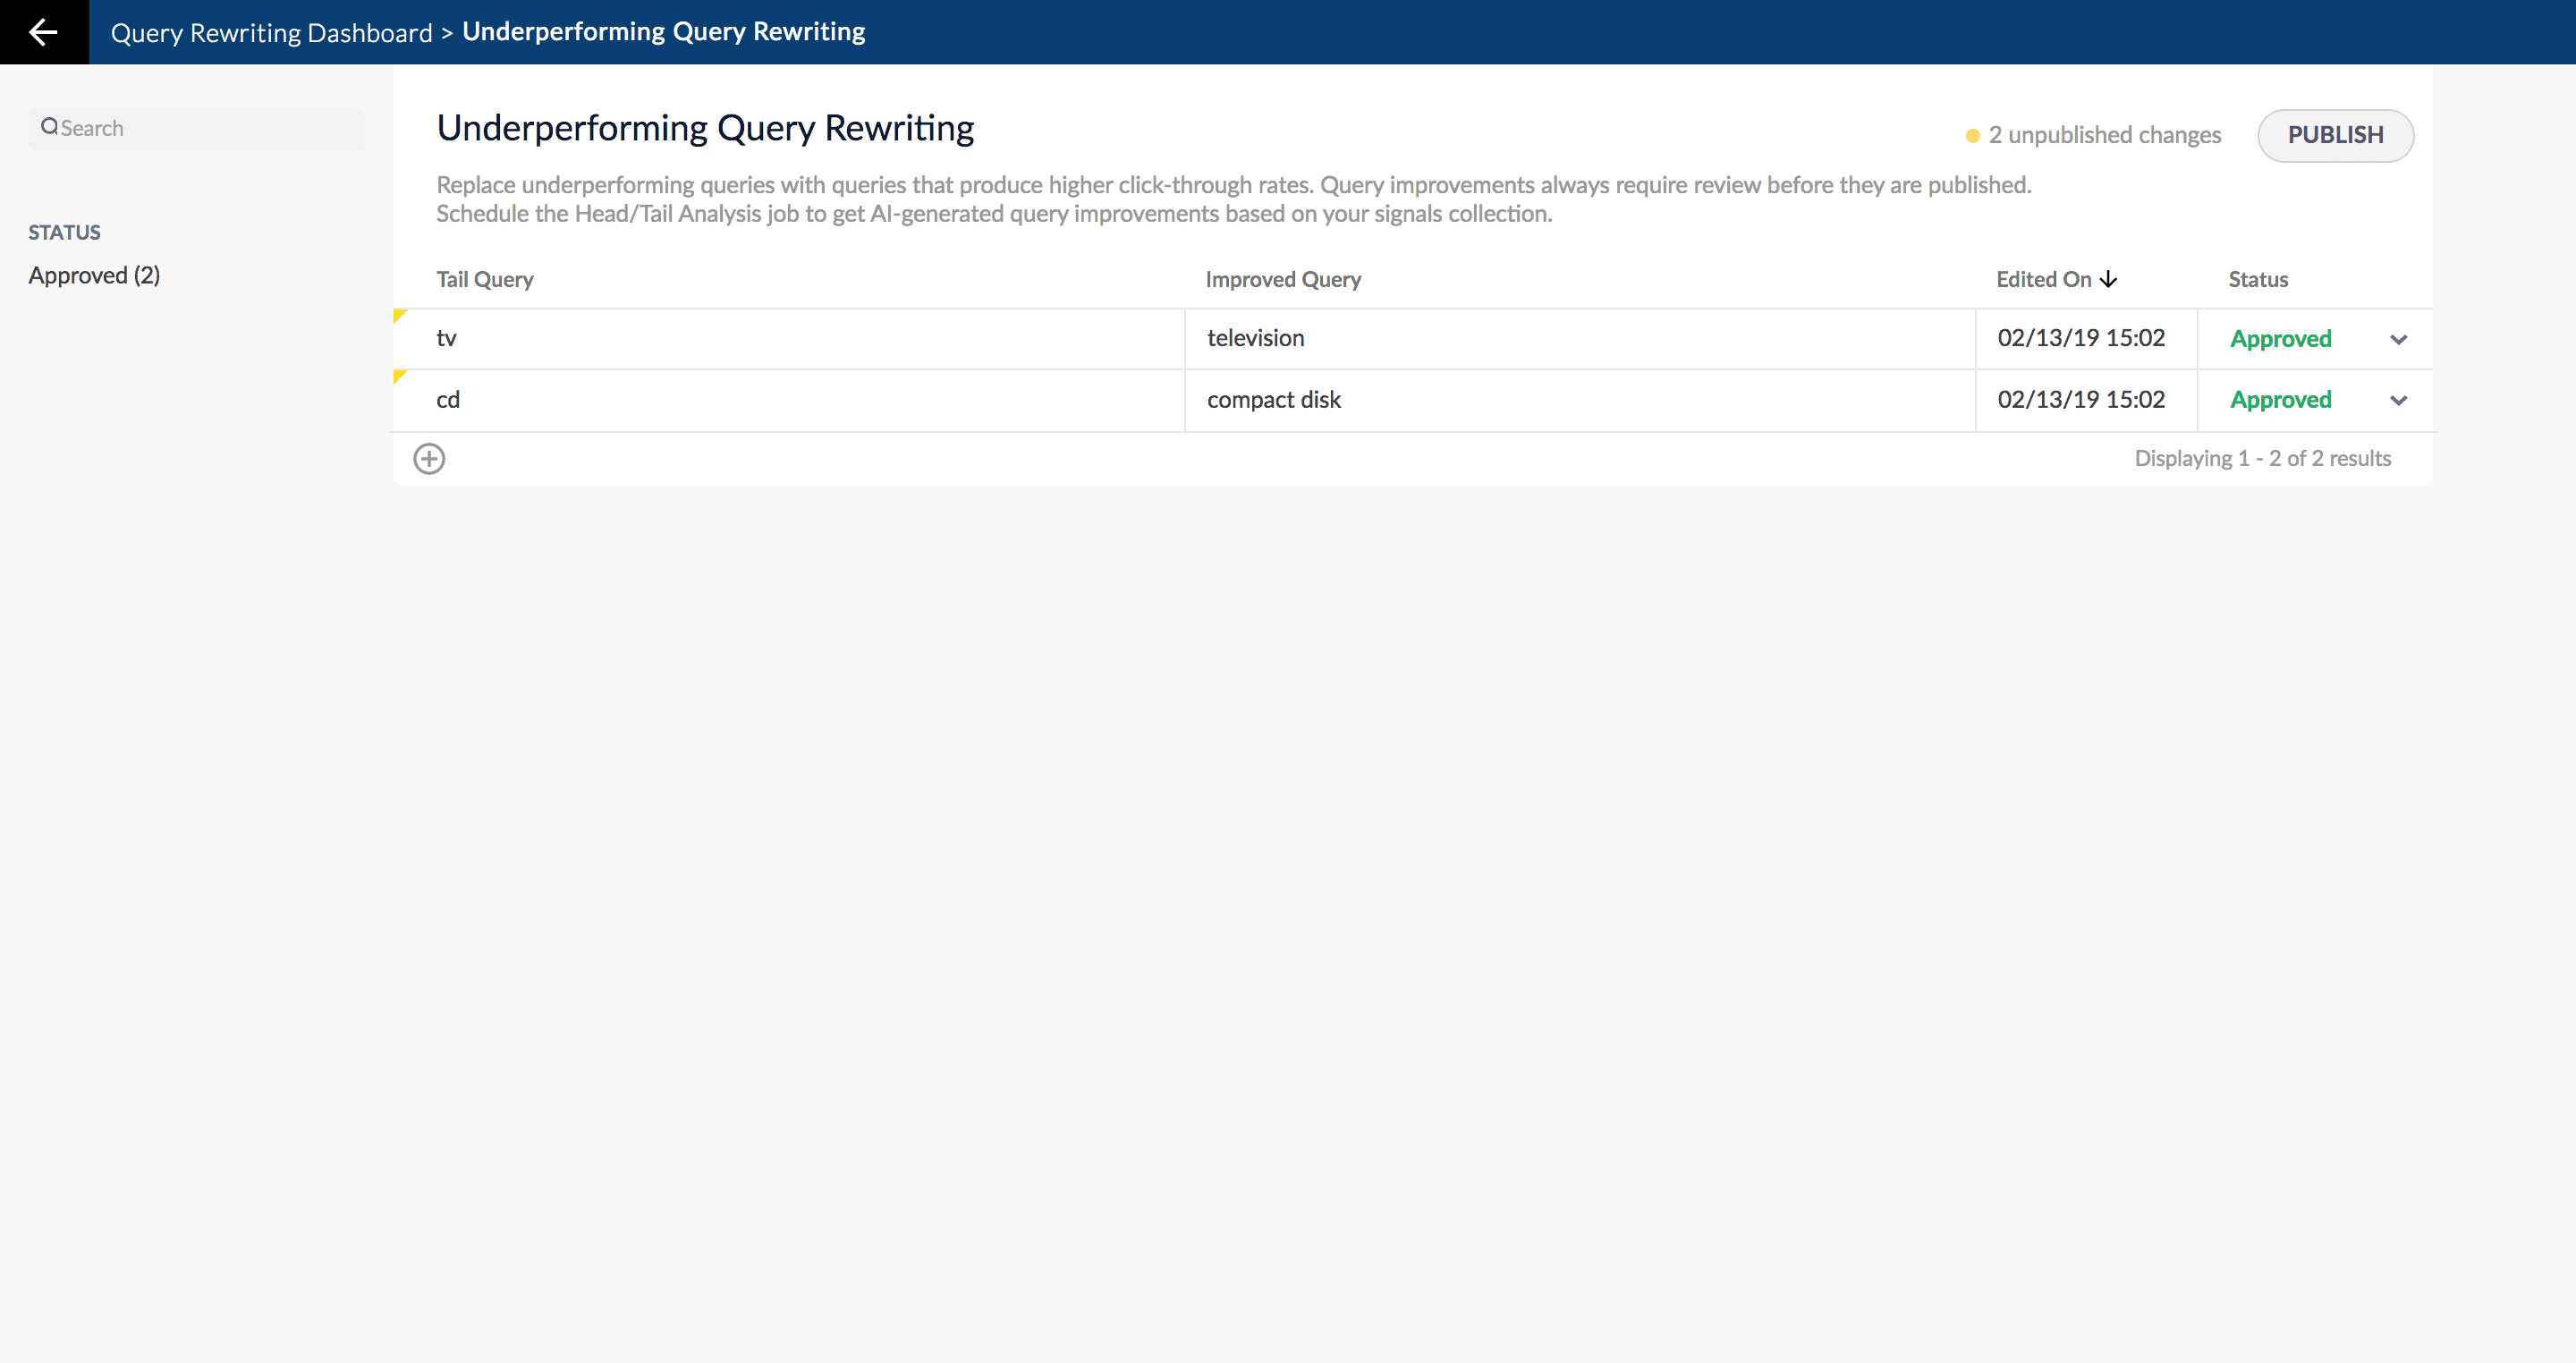 Underperforming Queries screen